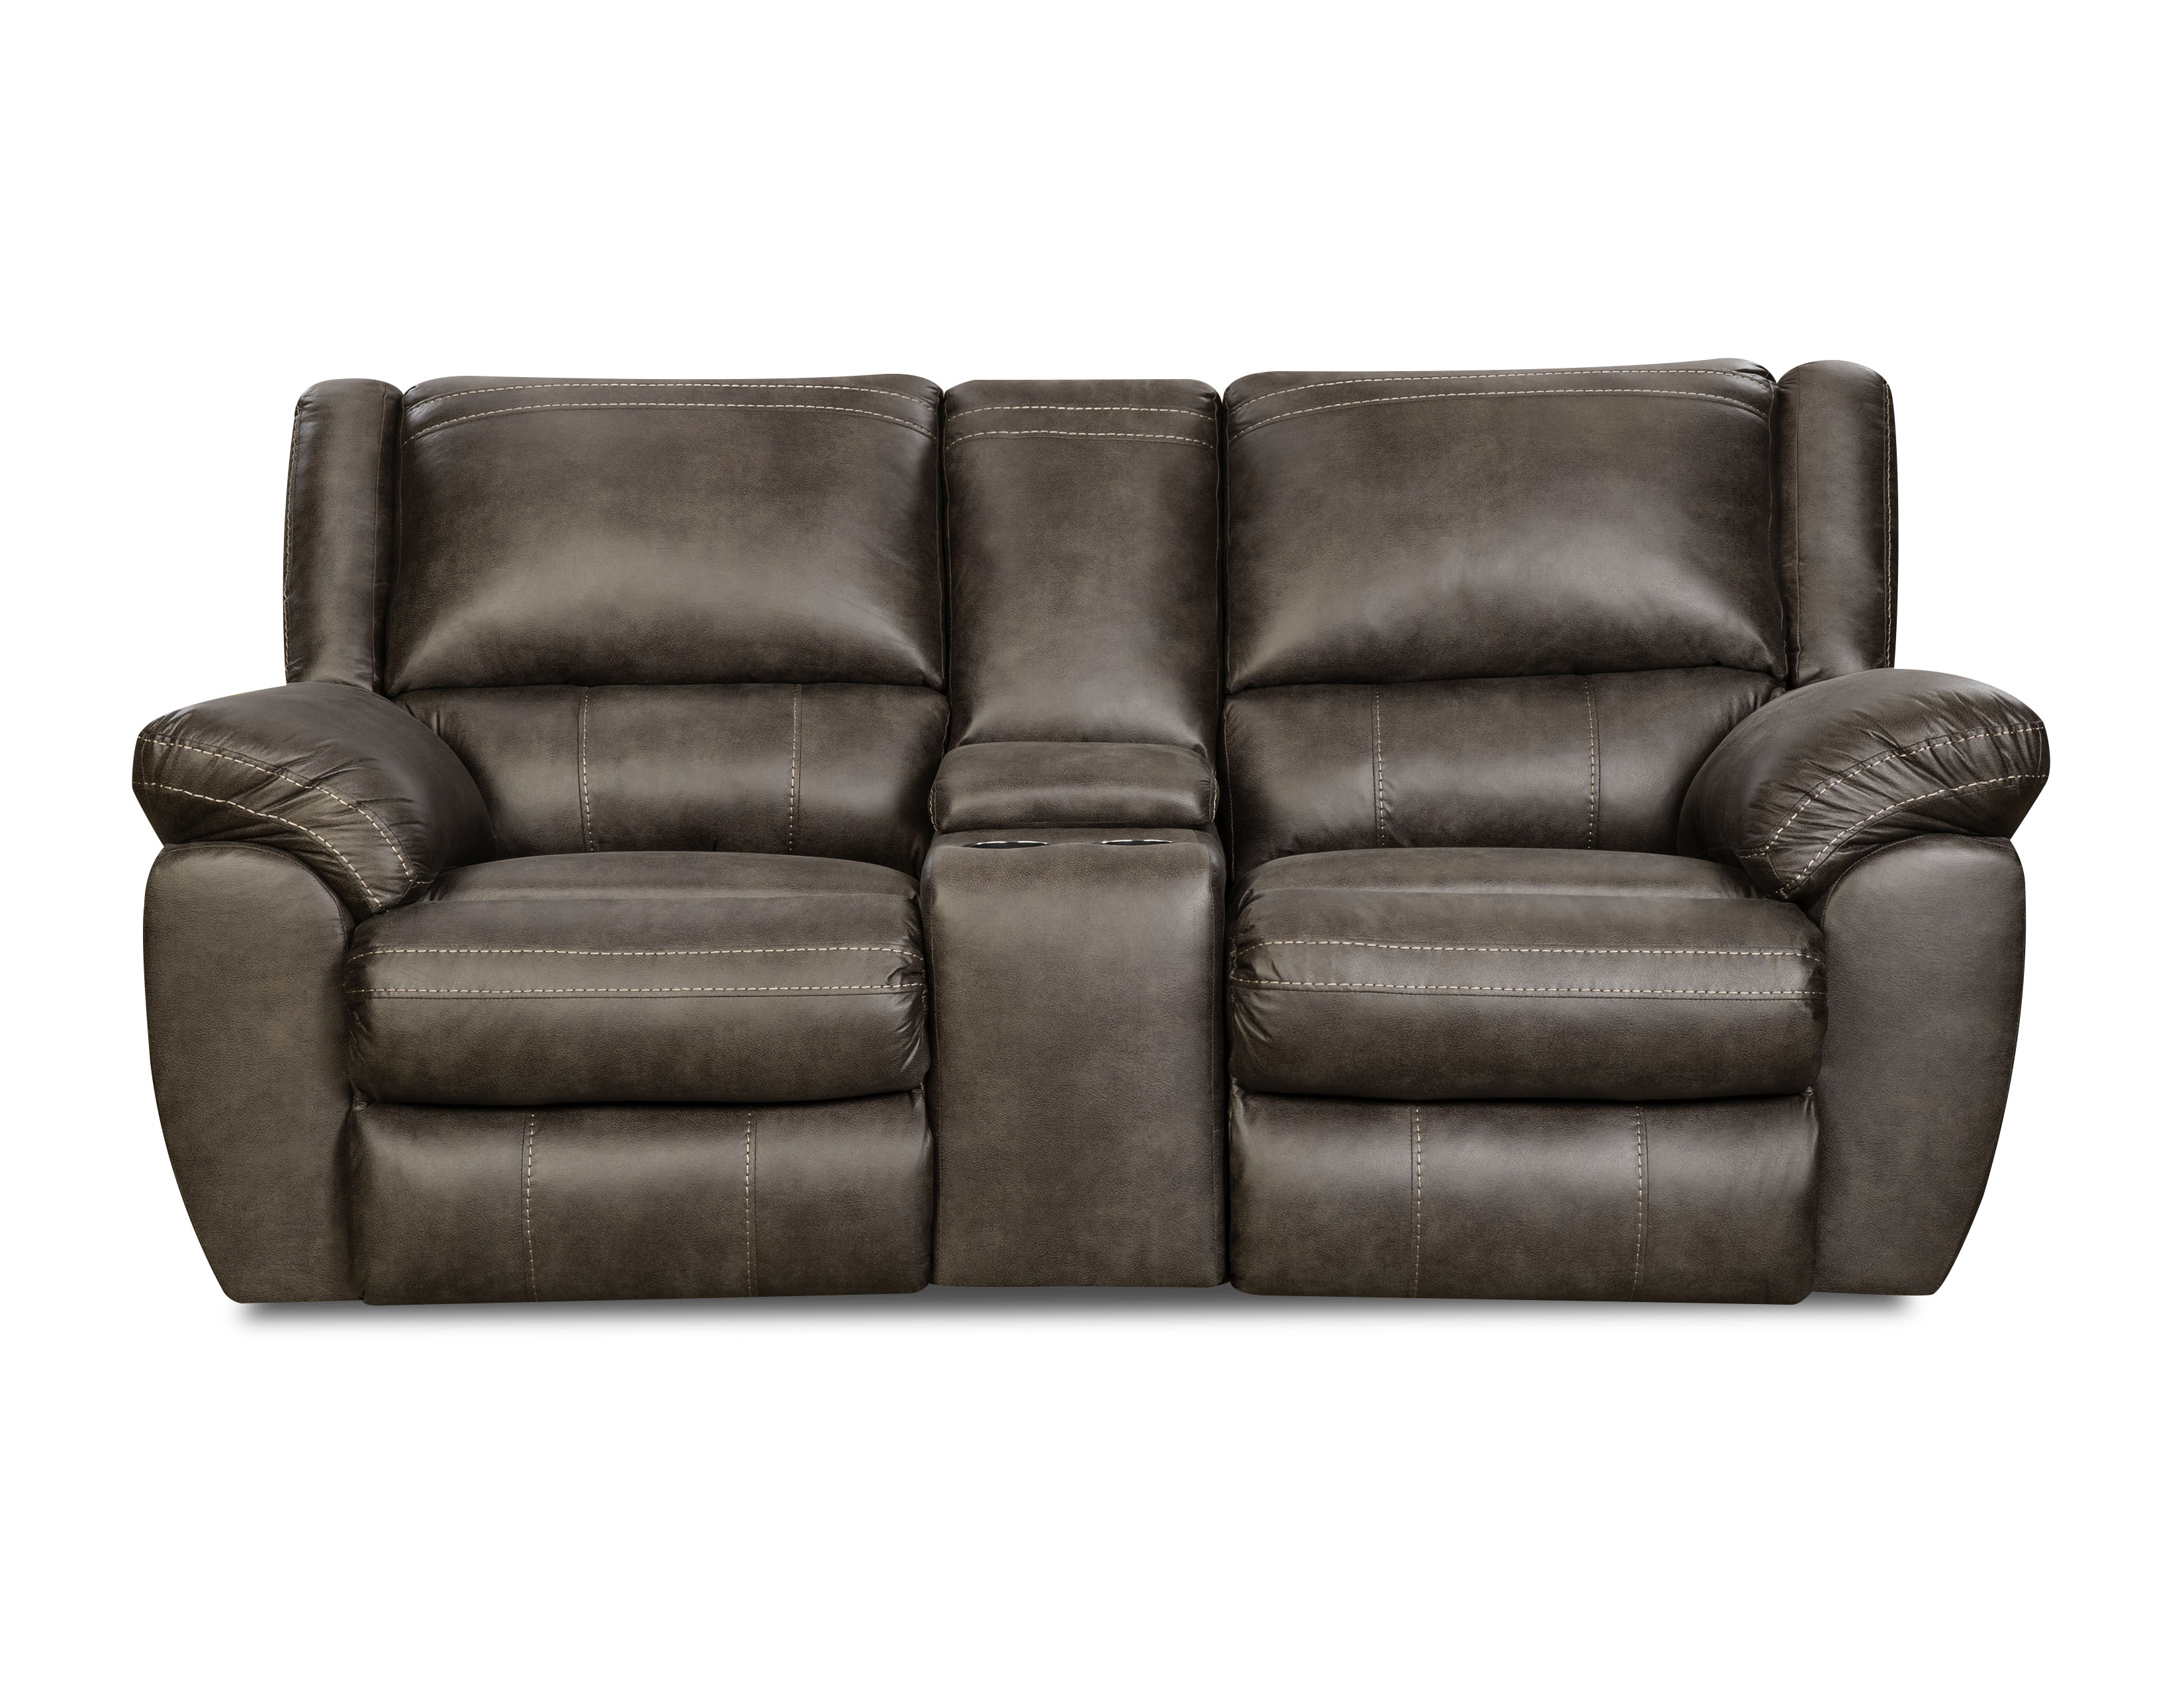 contemporary modern recliner sofa pattern-Wonderful Modern Recliner sofa Picture